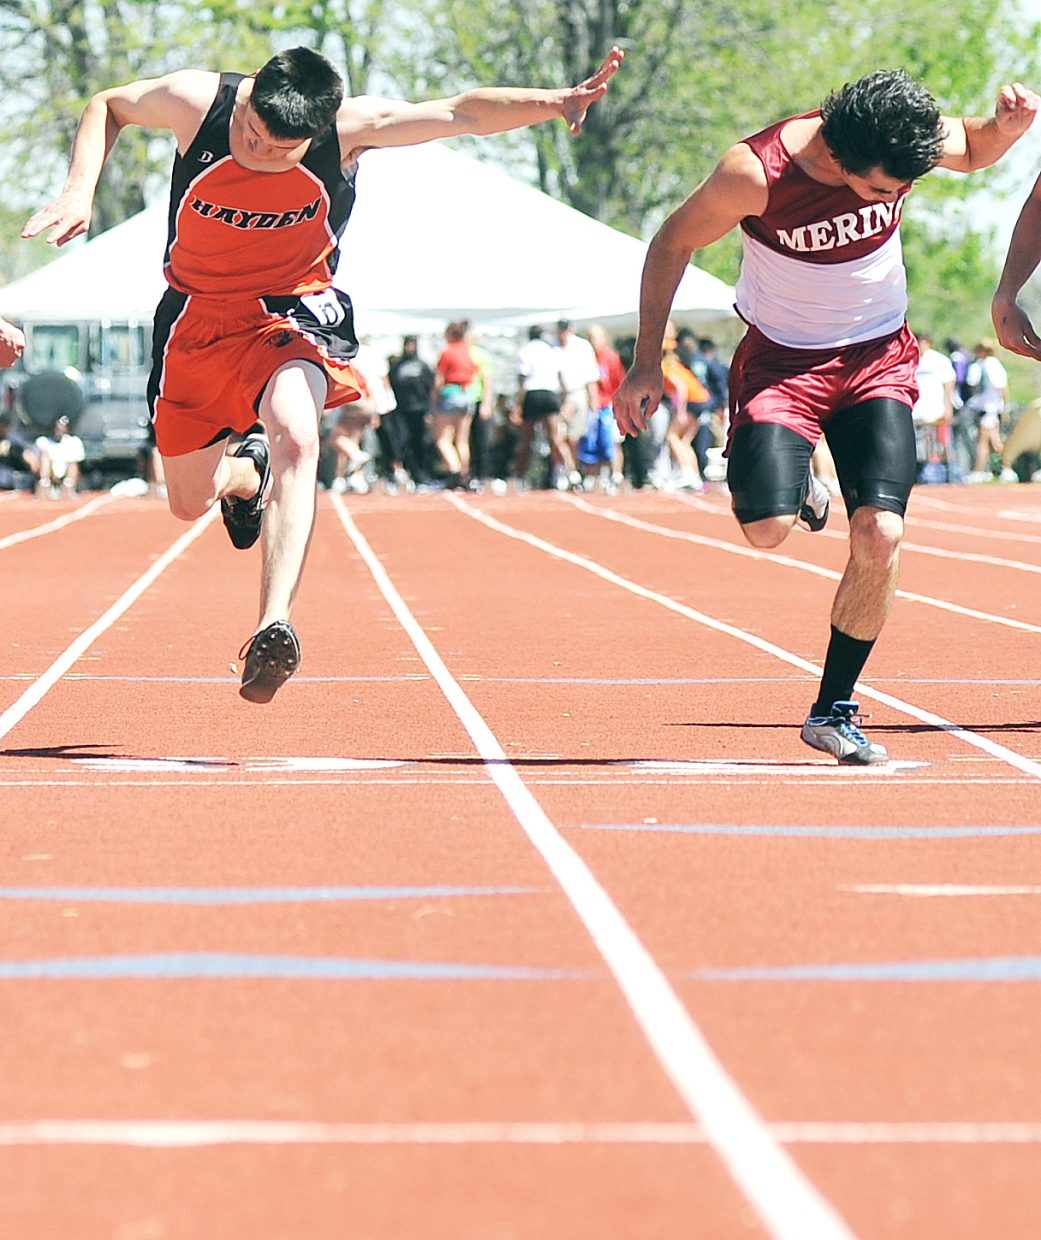 Hayden senior Jake Walker lunges across the finish line as he places second in the 100-meter dash at the state track meet in Lakewood. Walker finished 0.04 seconds behind the winner, Merino's Bryar DeSanti.